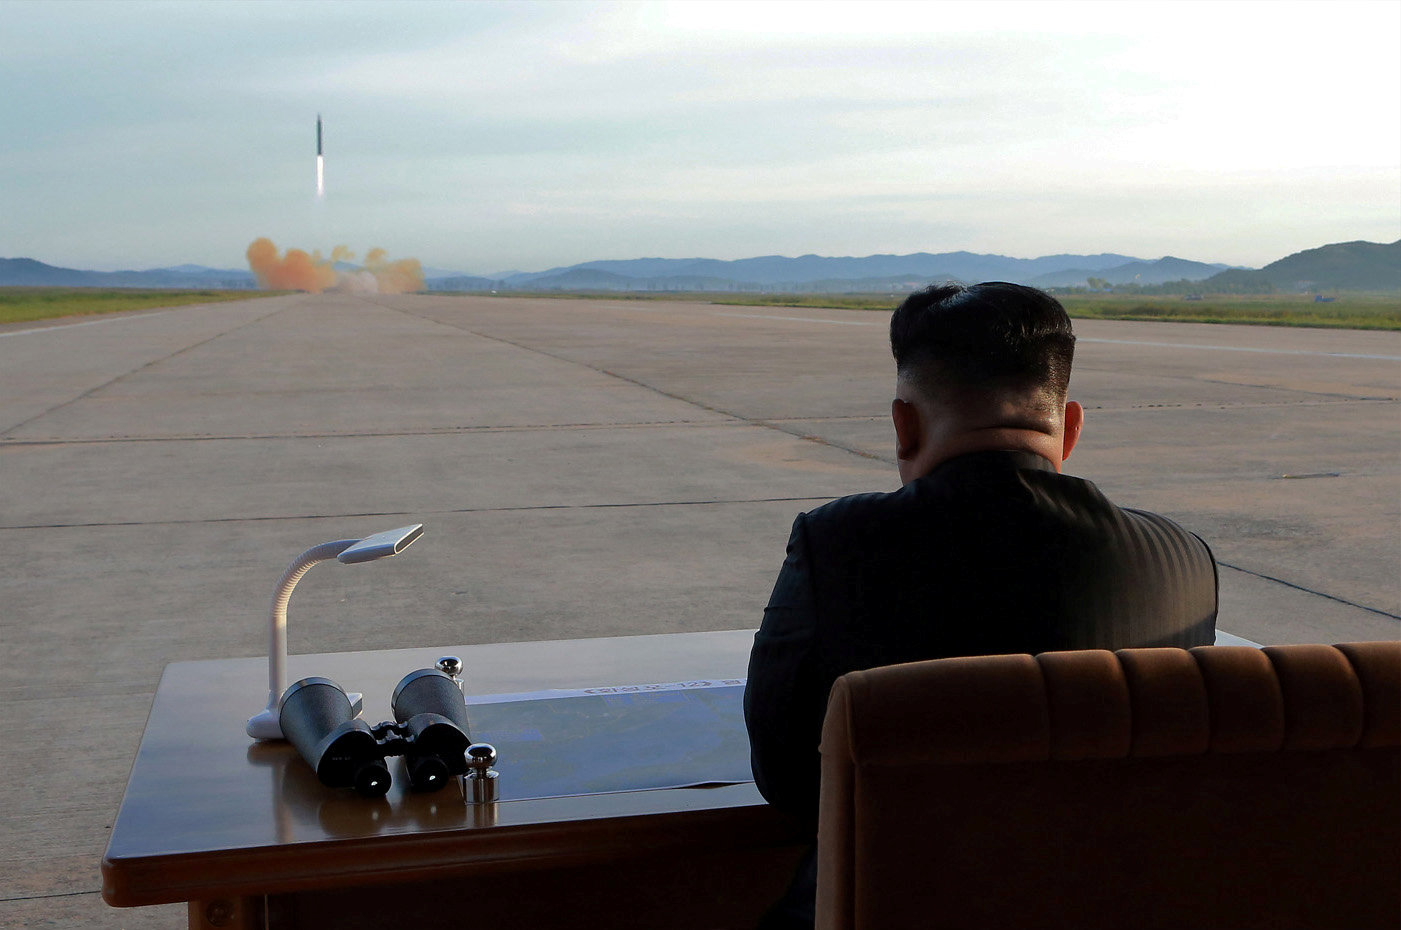 North Korean leader Kim Jong Un watches the launch of a Hwasong-12 missile in this undated photo released by North Korea's Korean Central News Agency (KCNA) on September 16, 2017. KCNA via REUTERS